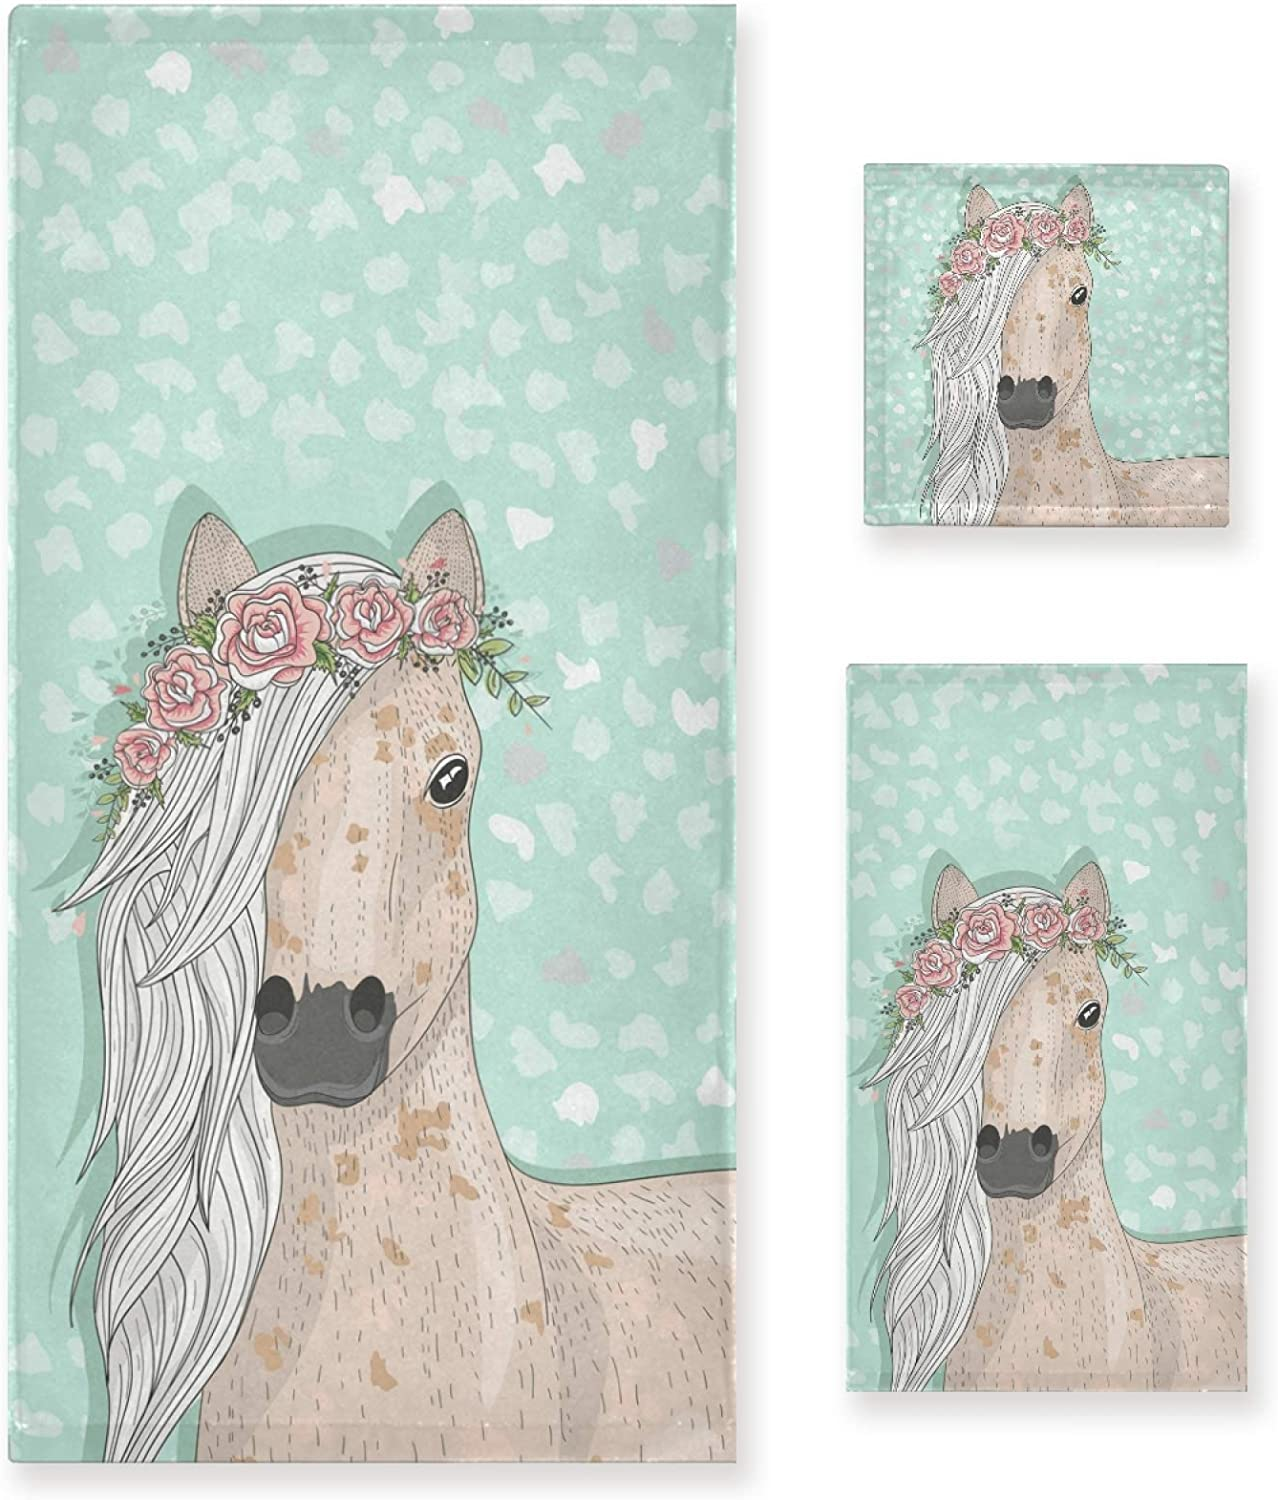 ALAZA Towel Bathroom Sets Chic Horse with Florals Towel Set of 3 Soft Highly Absorbent Towels 1 Bath Towel 1 Hand Towel 1 Washcloth for Kitchen Beach Gym Spa Decorative